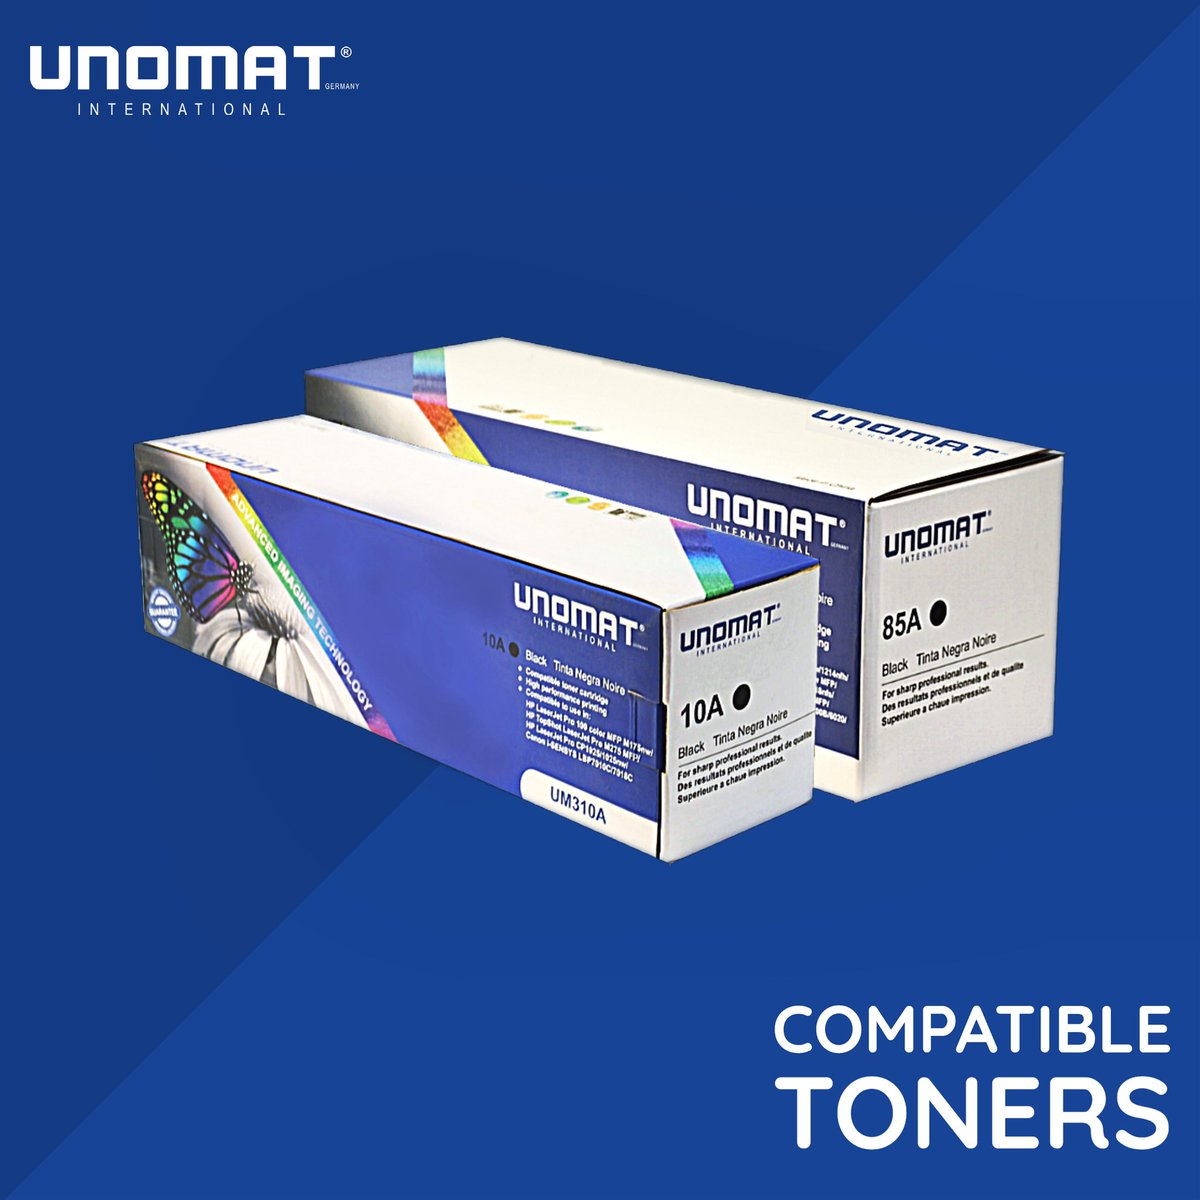 UNOMAT Compatible Toners are designed for sharp professional results.🖨  Guaranteed high-performance printing. Check our website to know more. . . #UnomatInternational #Dubai #Unomat #Batteries #Toner  #Asia #MiddleEast #Germany #Africa #trending #canon #hp #printing https://t.co/NpyZk98ob4